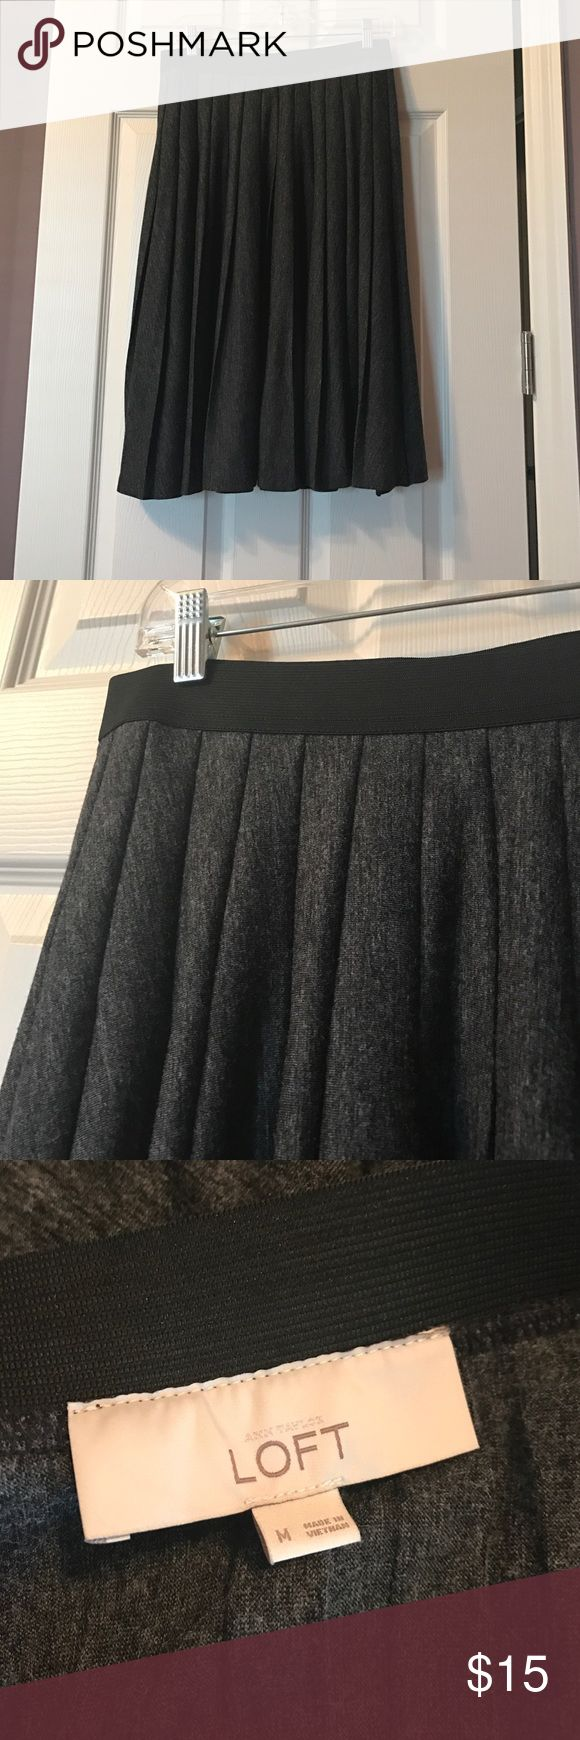 Dark gray pleated skirt Worn only once or twice. Elastic waist, zip on side. No lining. Machine washable. Polyester and Rayon. Calf length skirt. Great with tights and boots! LOFT Skirts Midi